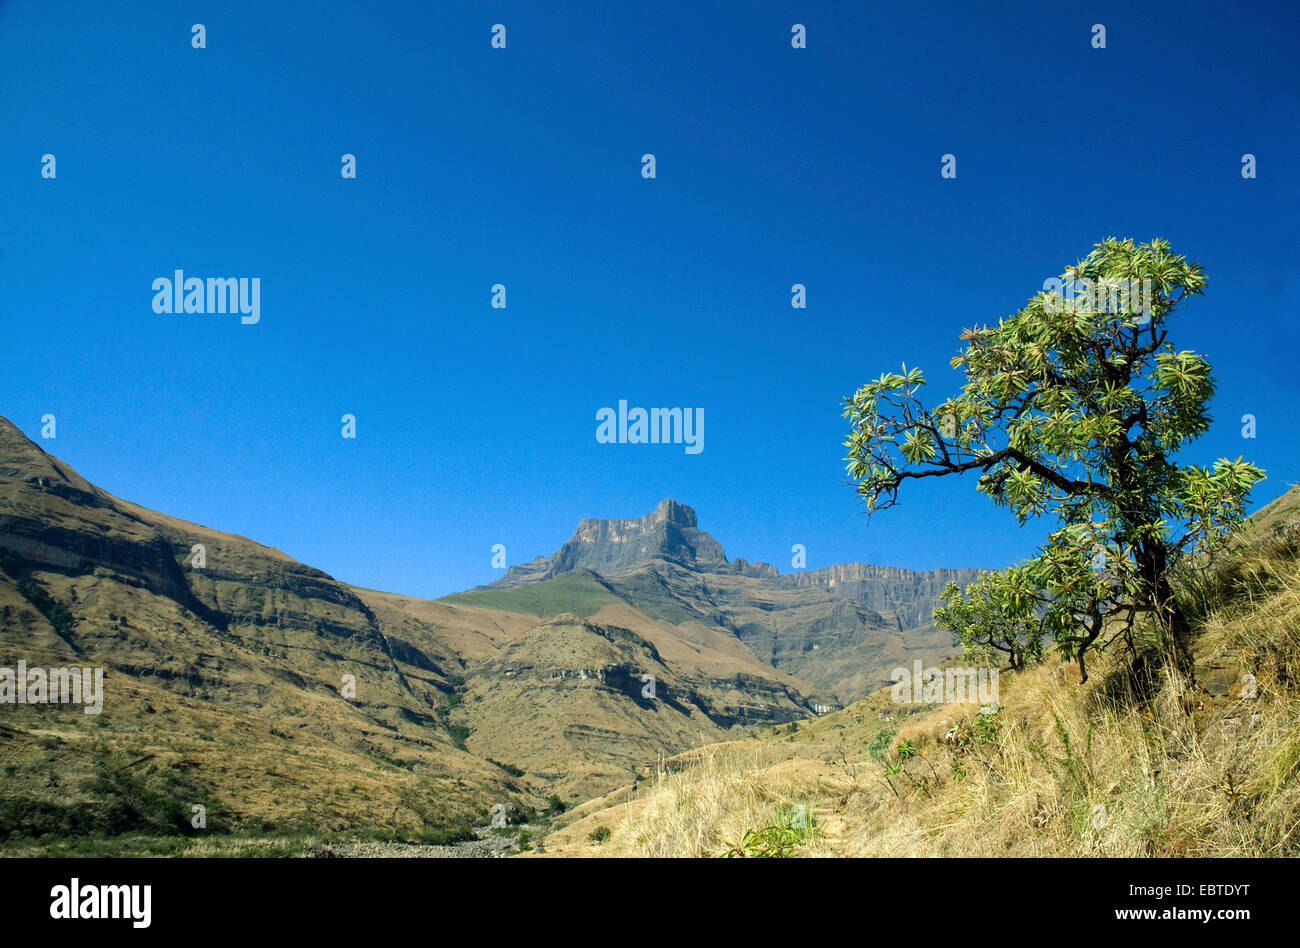 Montagnes du Drakensberg, Afrique du Sud, Cape Town Photo Stock